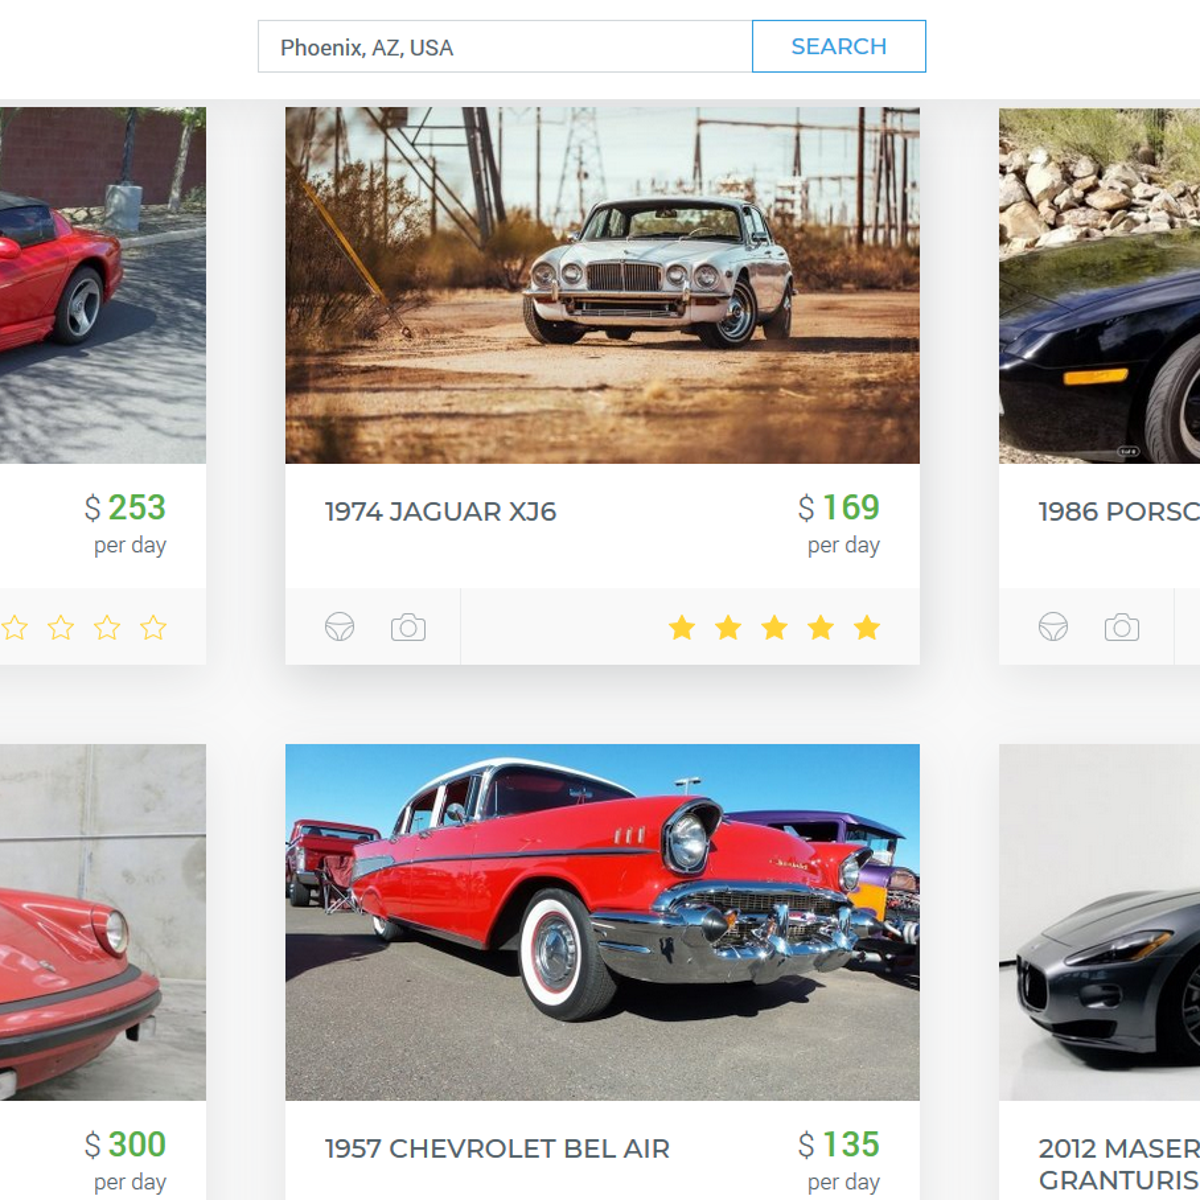 Driveshare Brings Classic Car Sharing To The Valley Arizona News